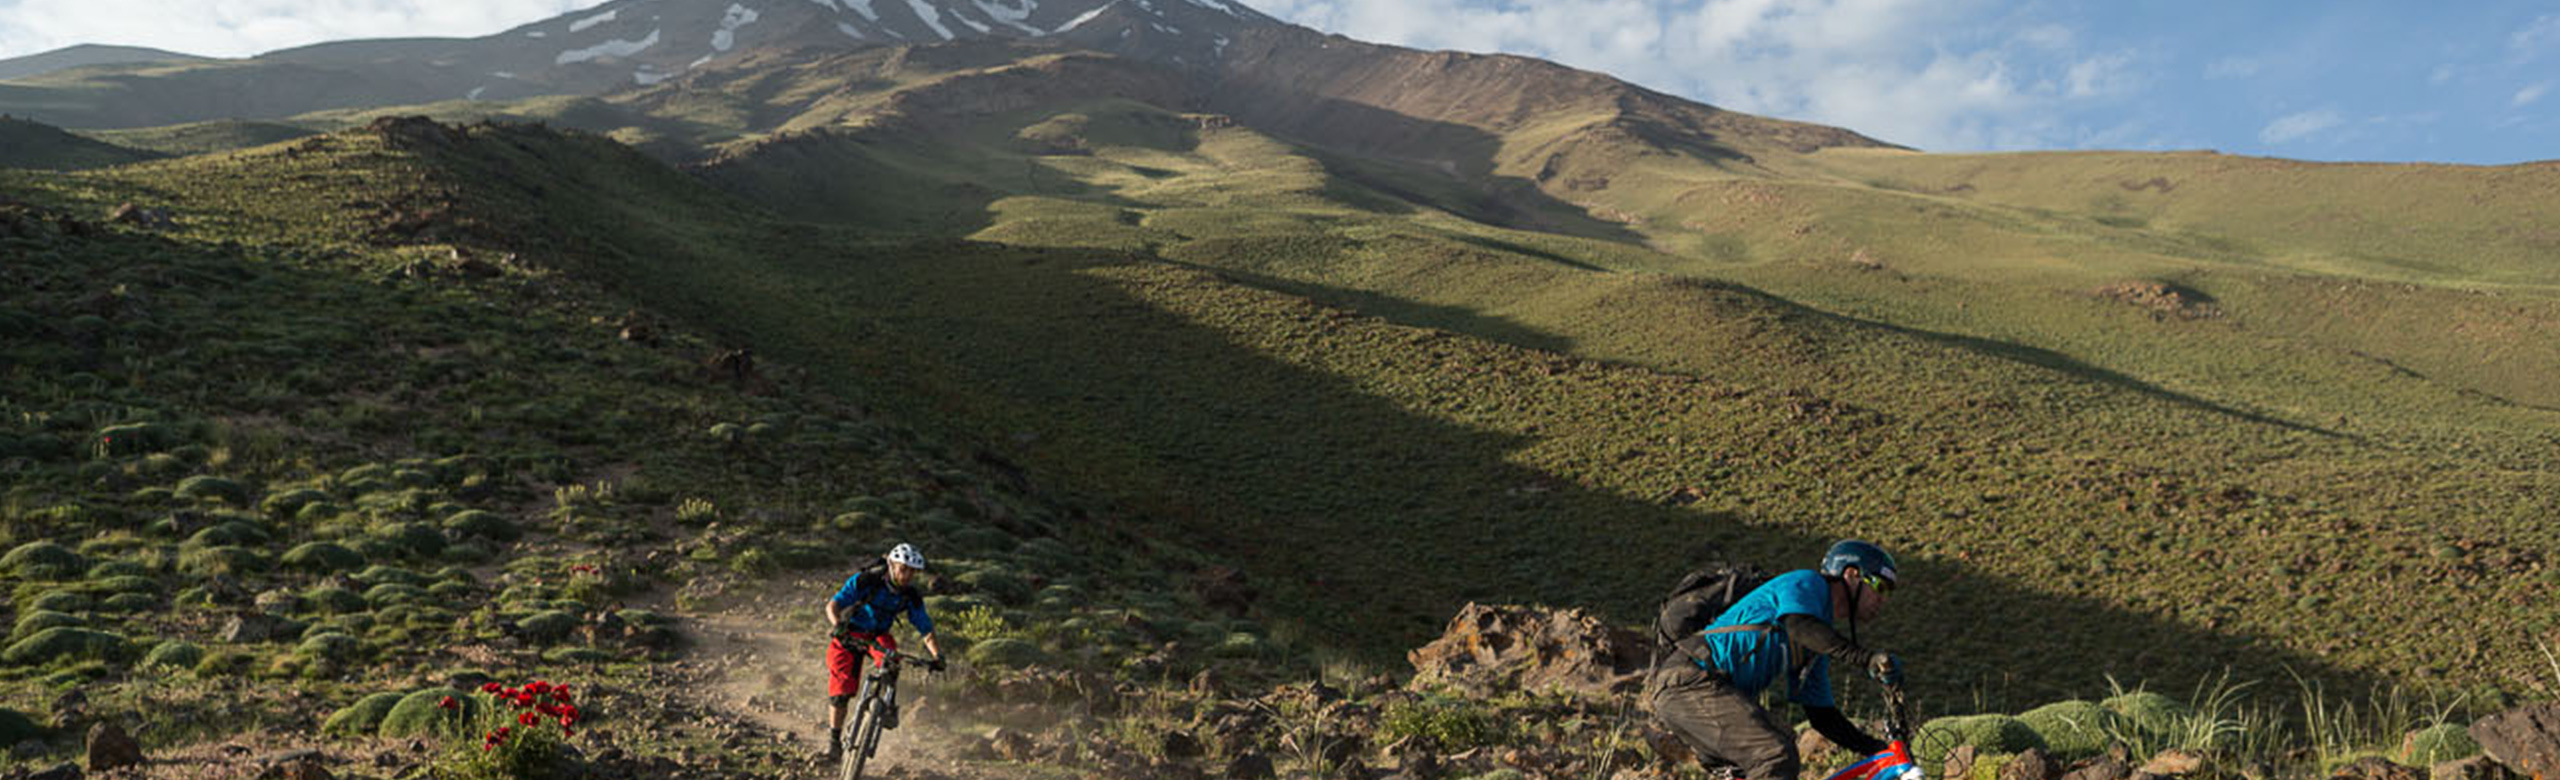 Enduro MTB  trip in Iran